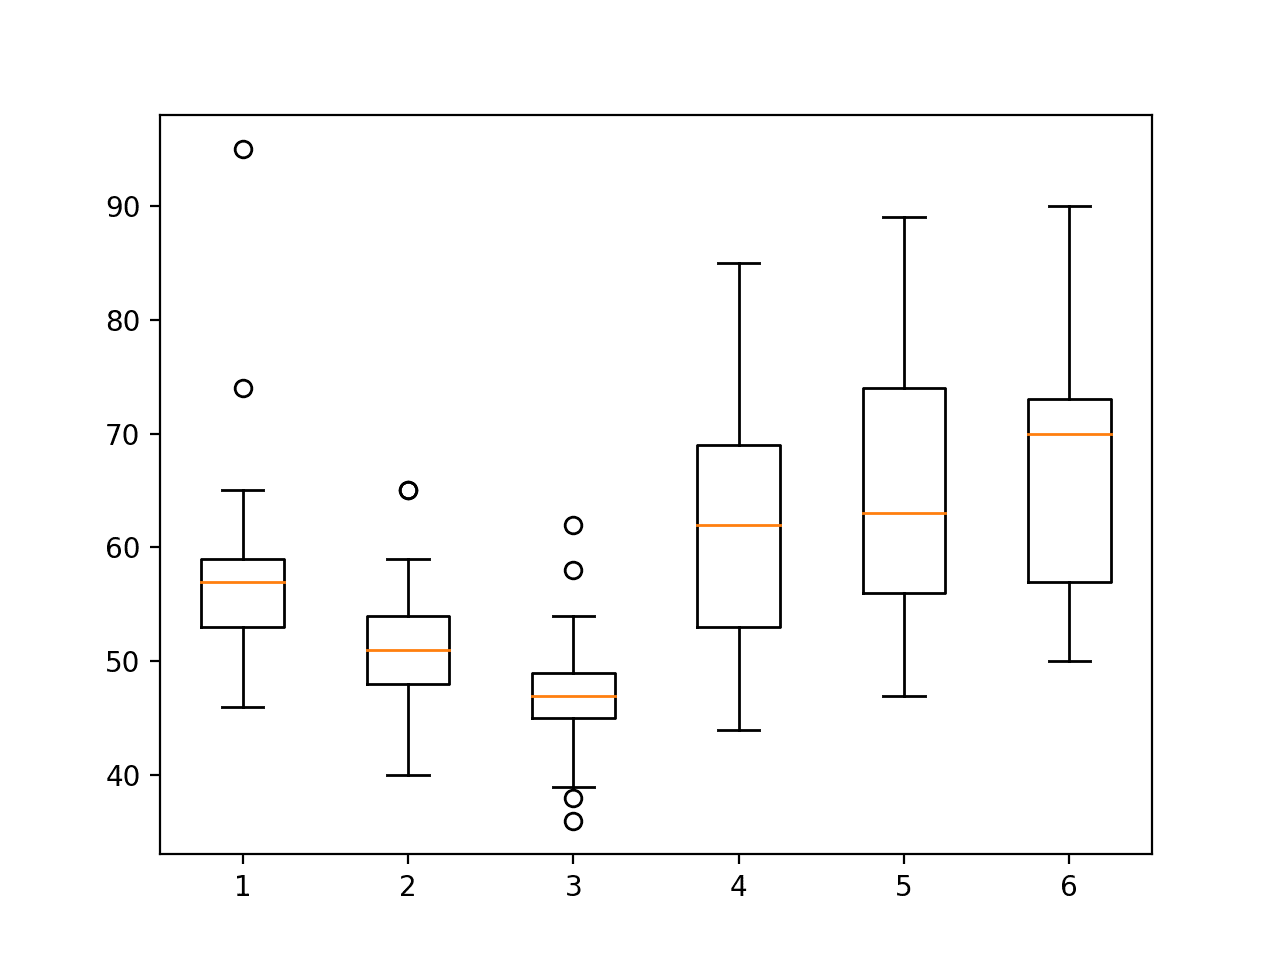 Boxplot of activity durations per subject on train set